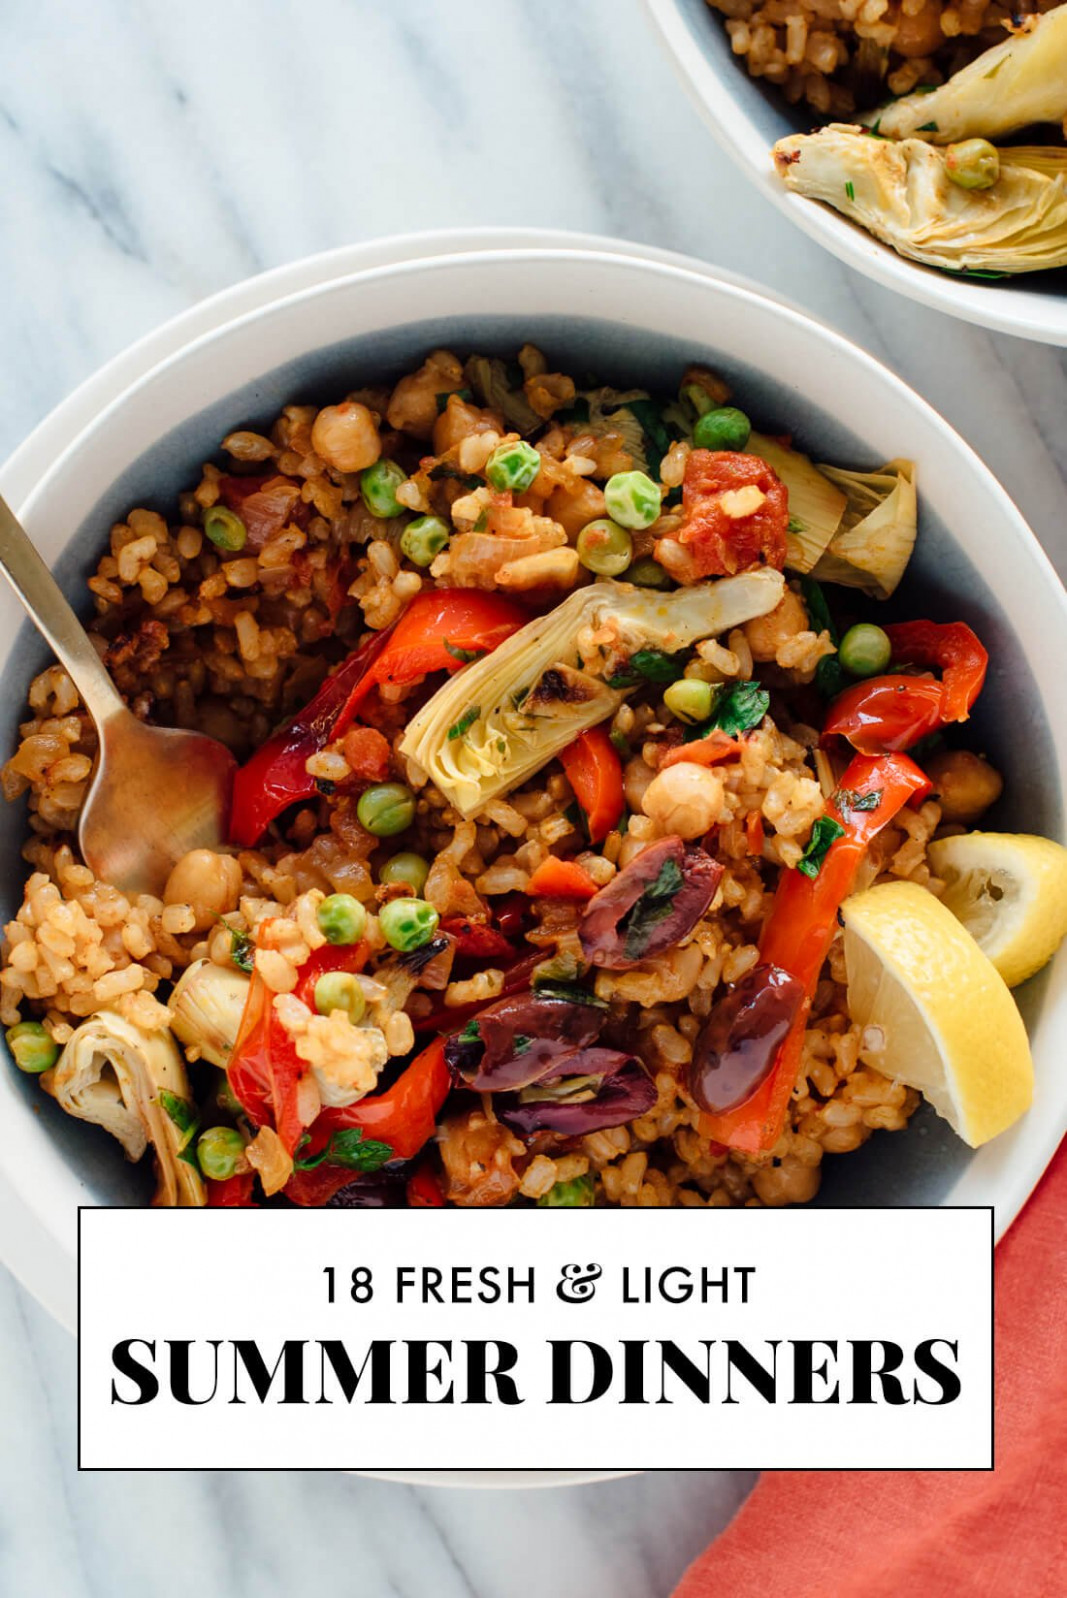 18 Light Summer Dinner Recipes - Cookie And Kate - Recipes Dinner Meals